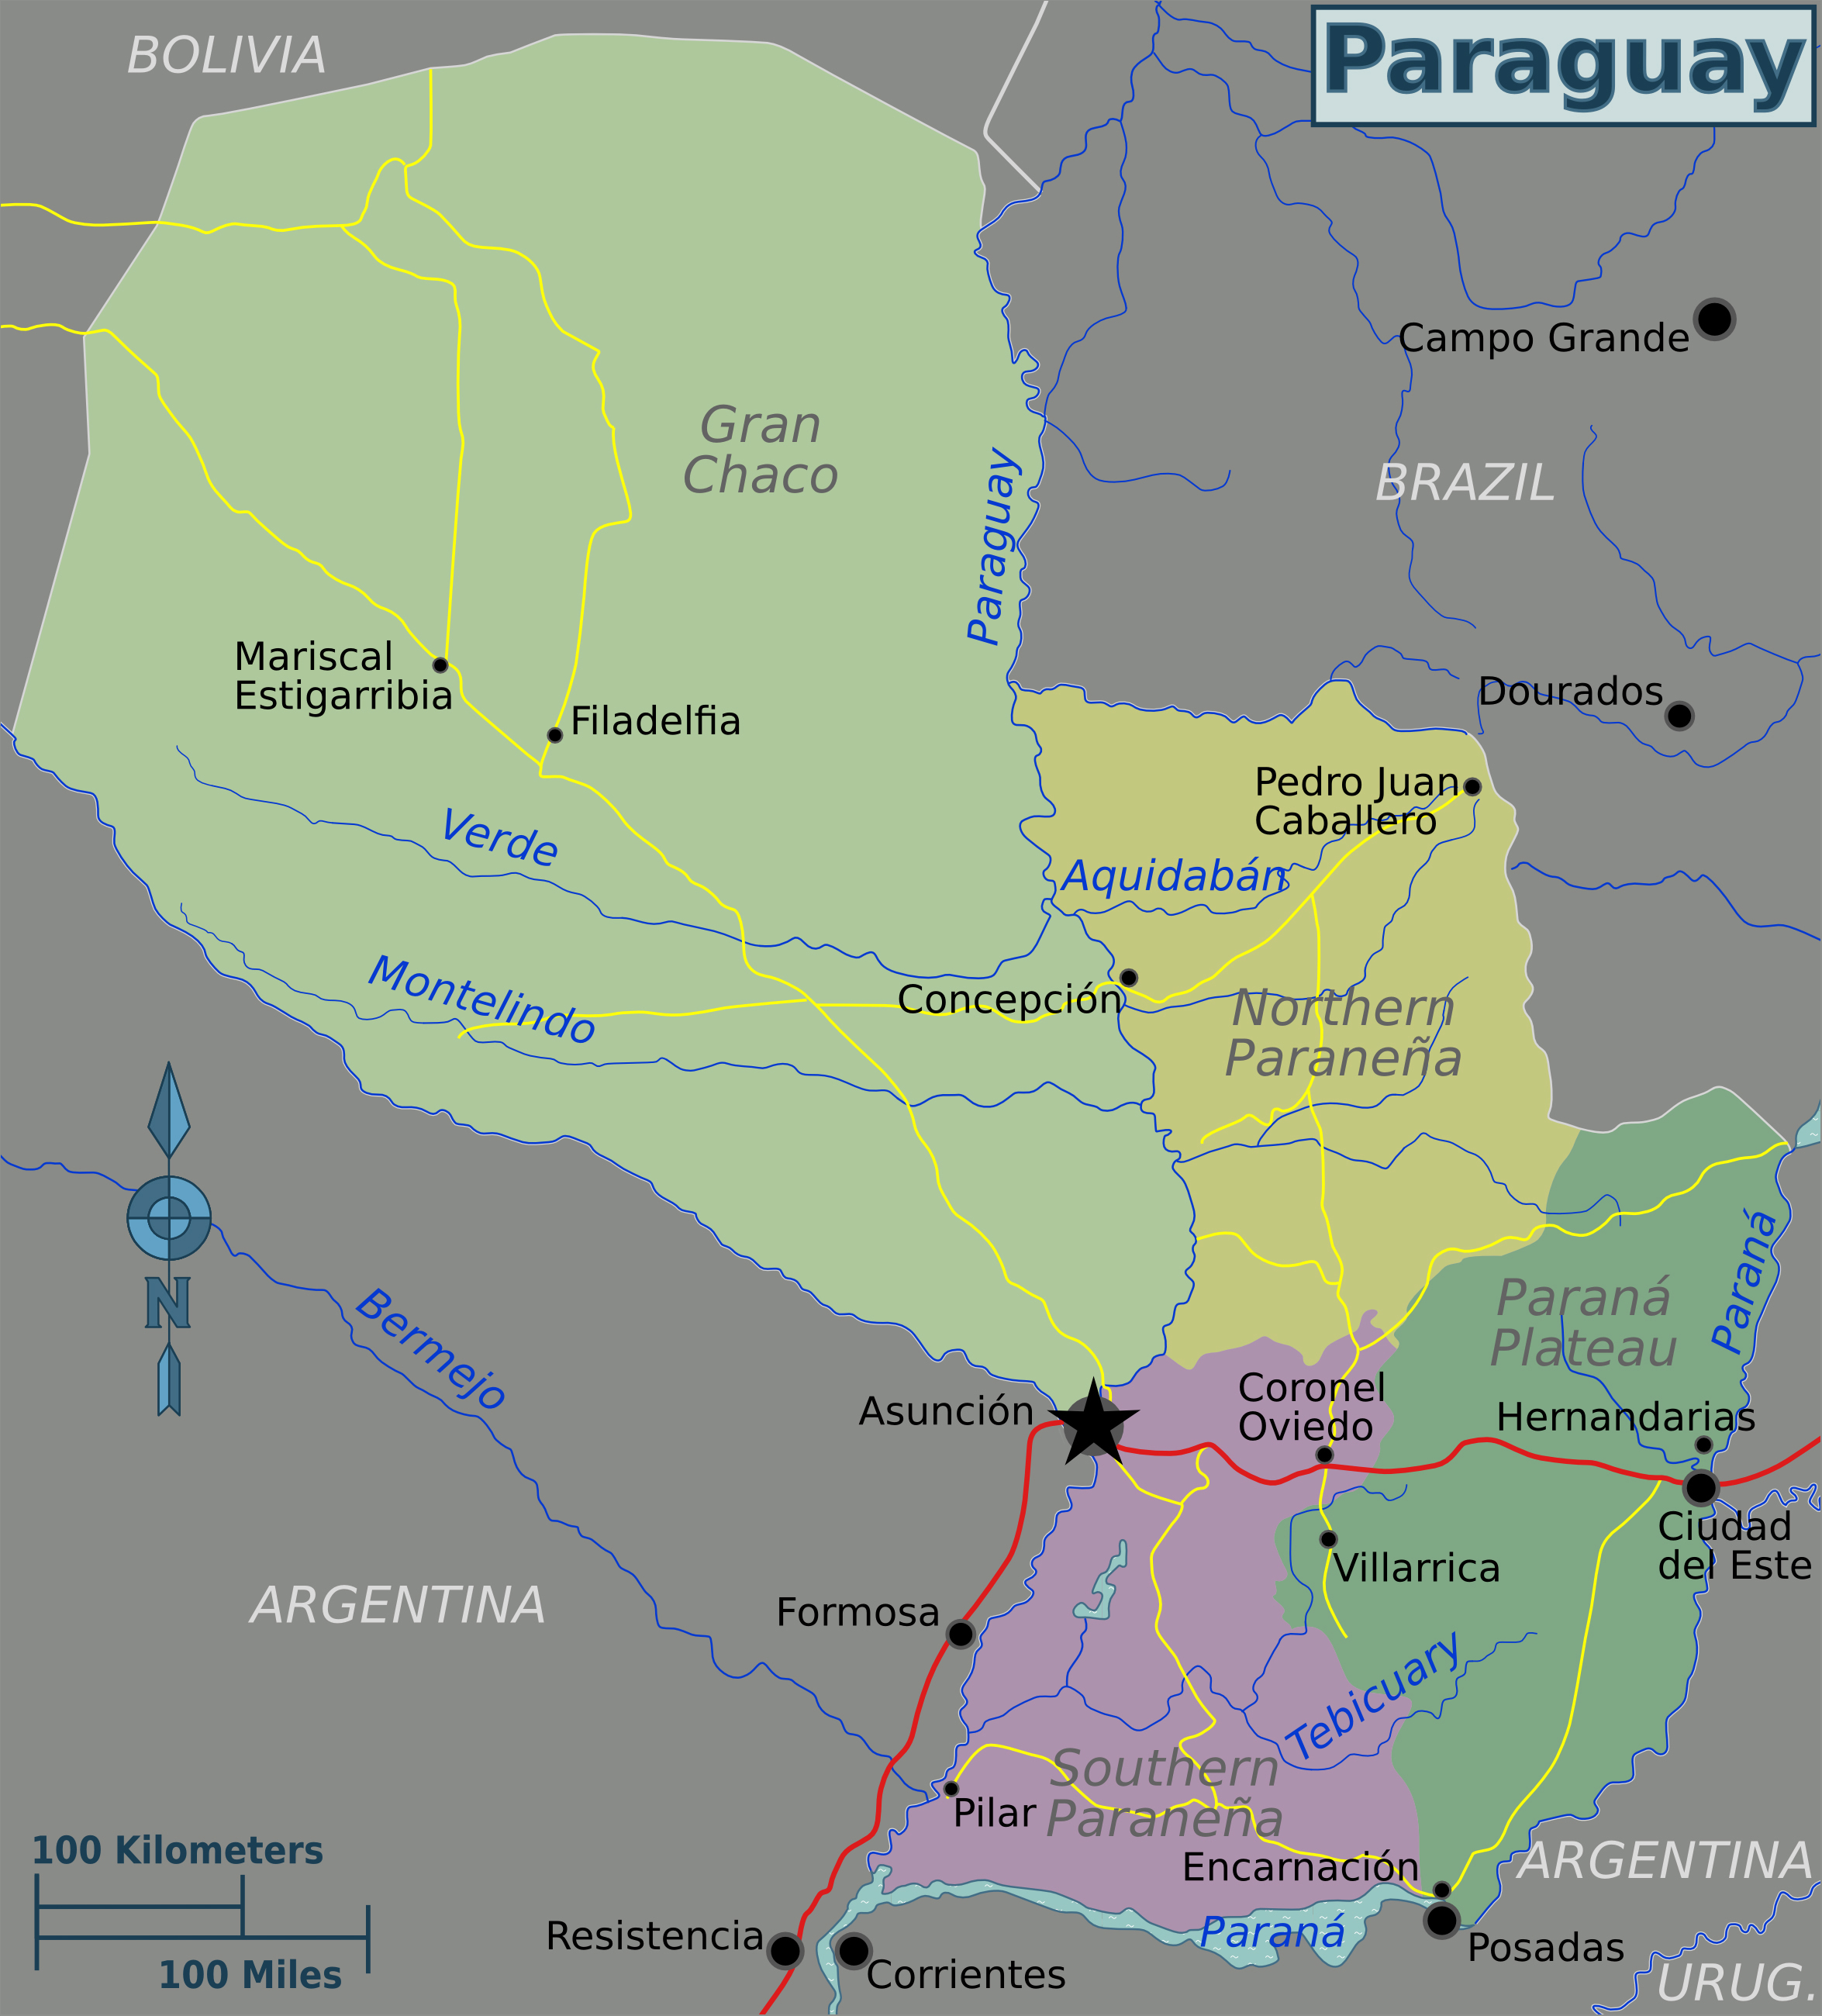 Full Political Map Of Paraguay Paraguay Full Political Map - Map of paraguay